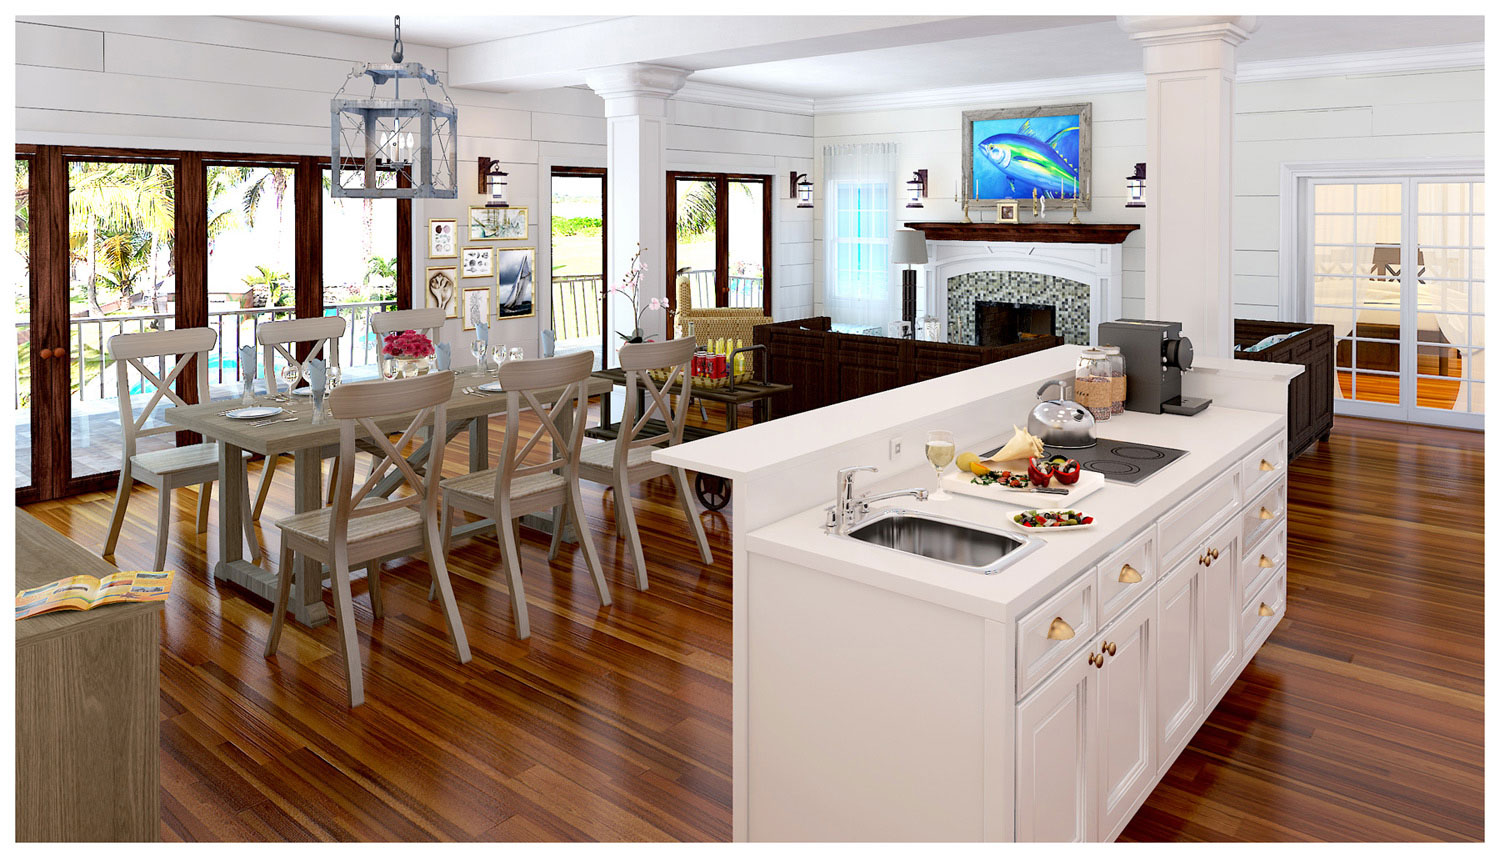 Kitchen Visualization 3D model - For Kitchen for Jonathan,The Bahamas